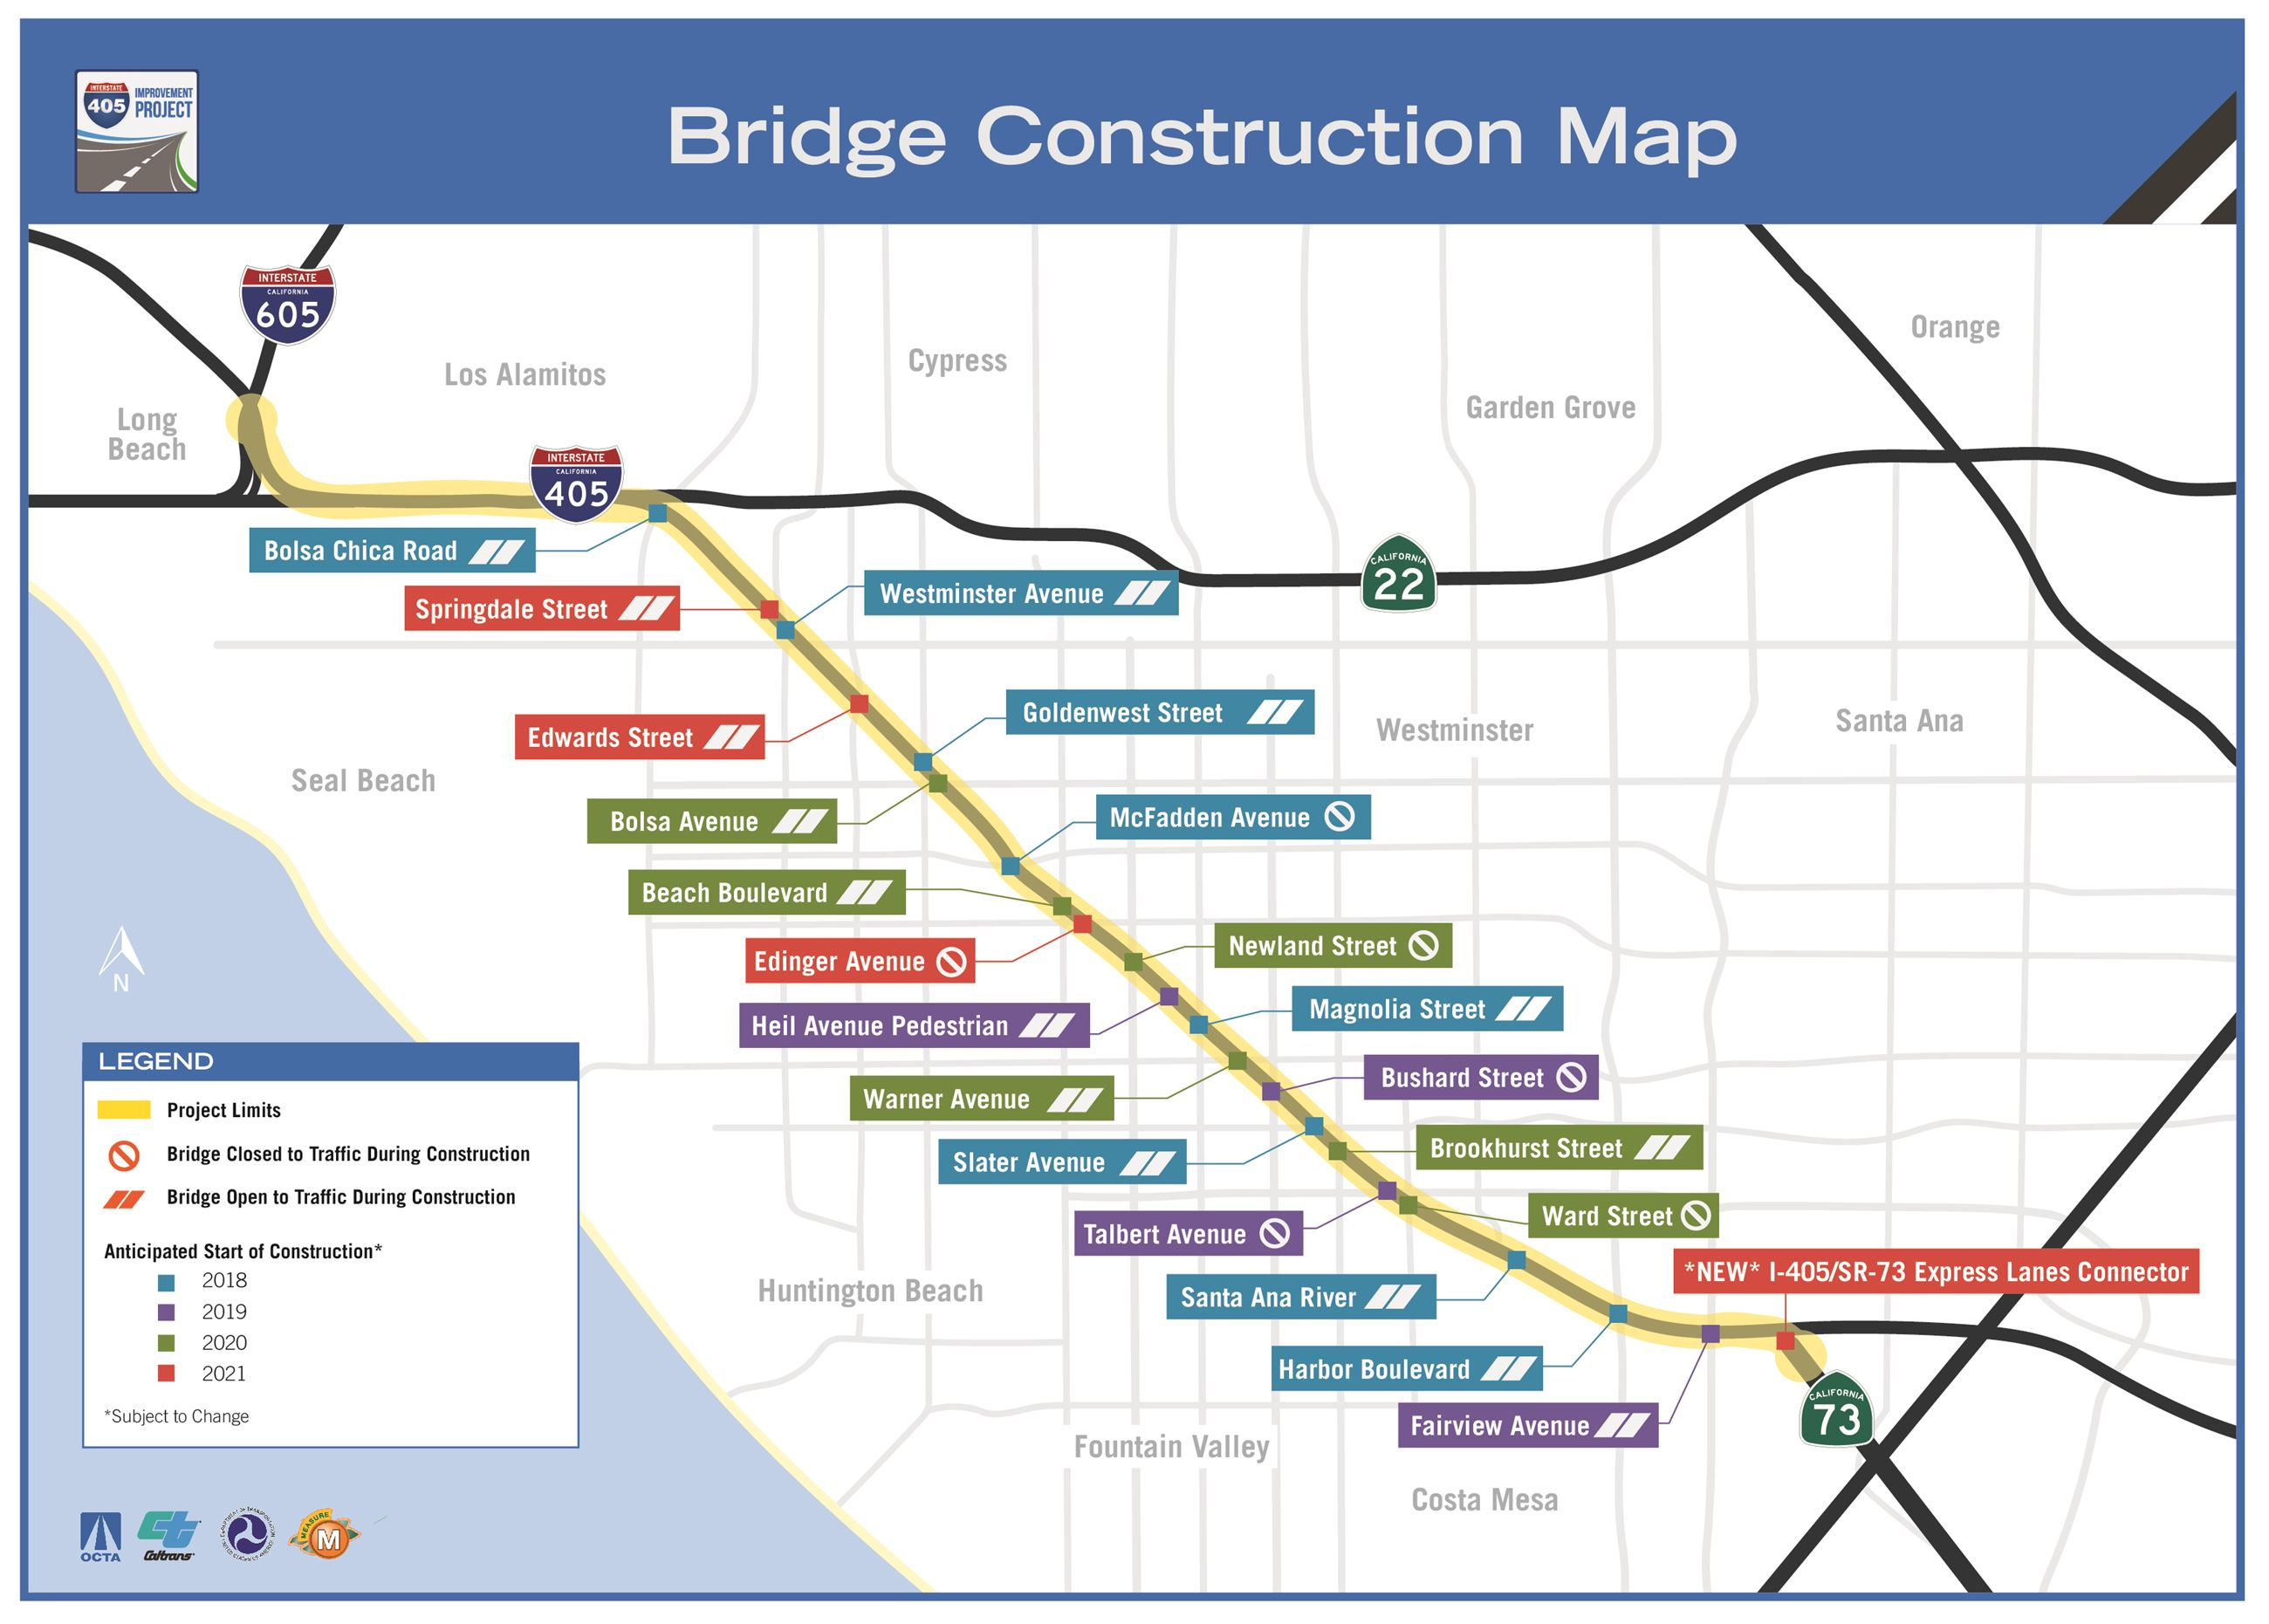 405-Bridge-Construction-Map_081417_web